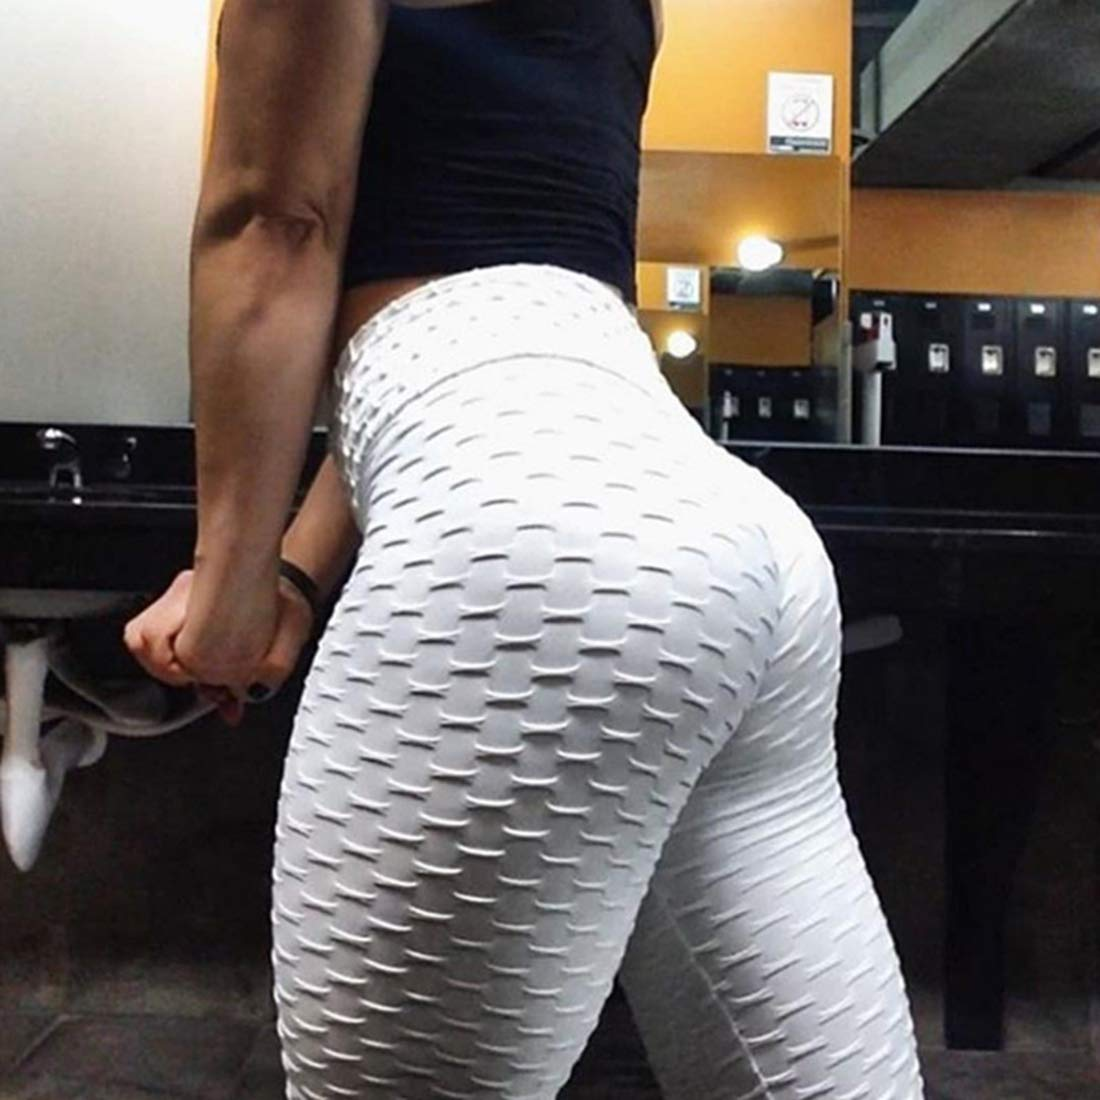 Womens High Waist Yoga Pants Tummy Control Butt Lift Leggings Textured Workout Ruched Sports Stretchy Slimming Tights